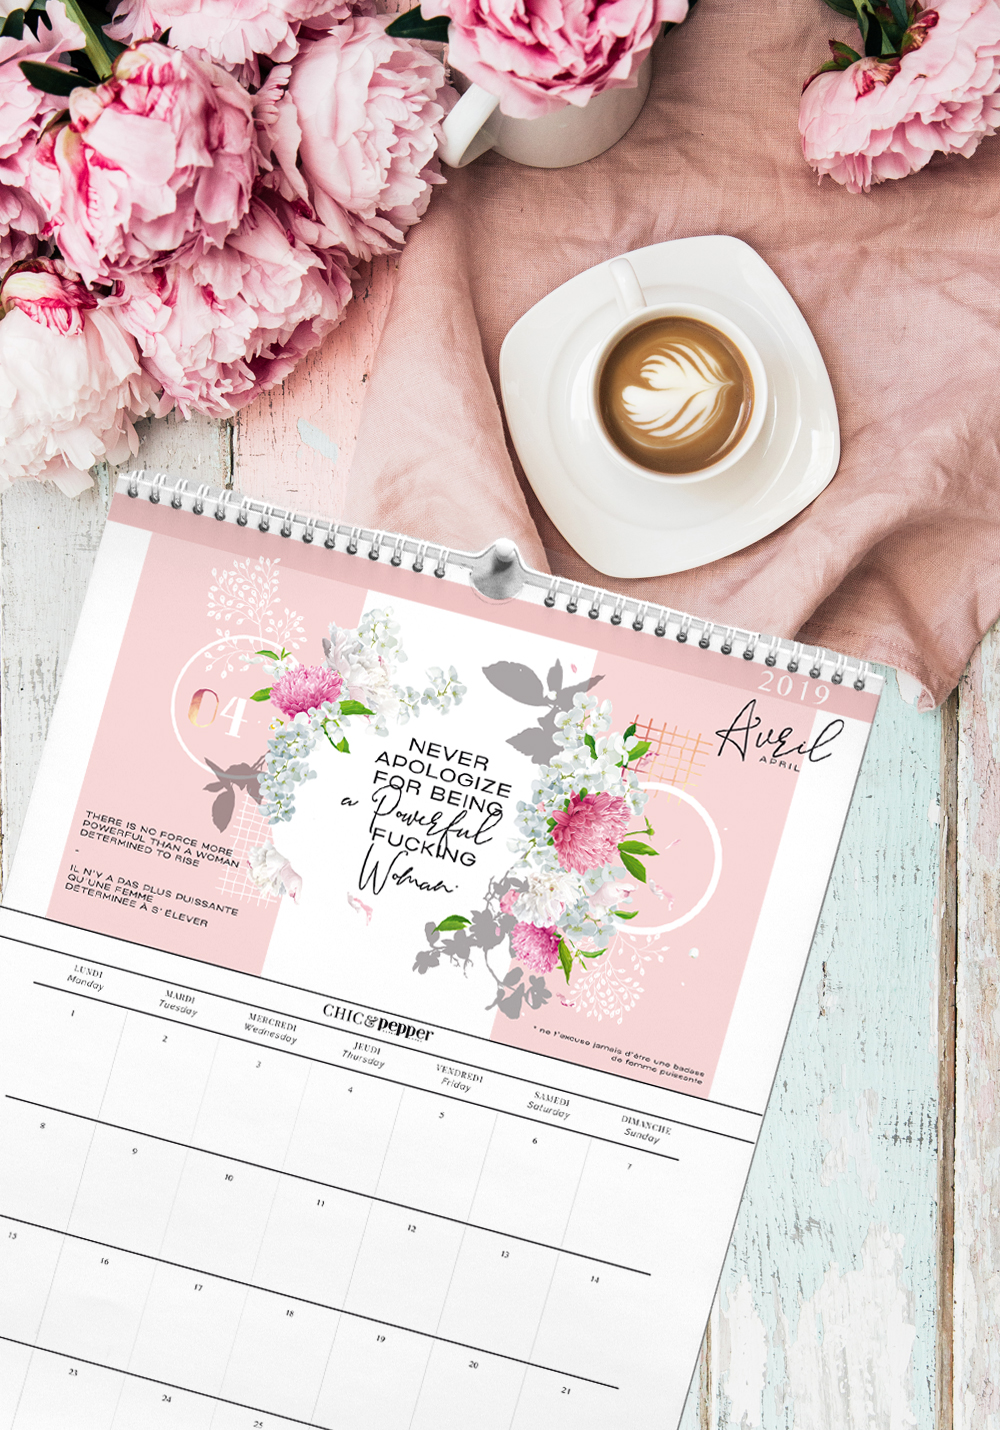 mood board collection blooming girl boss chic and pepper 5